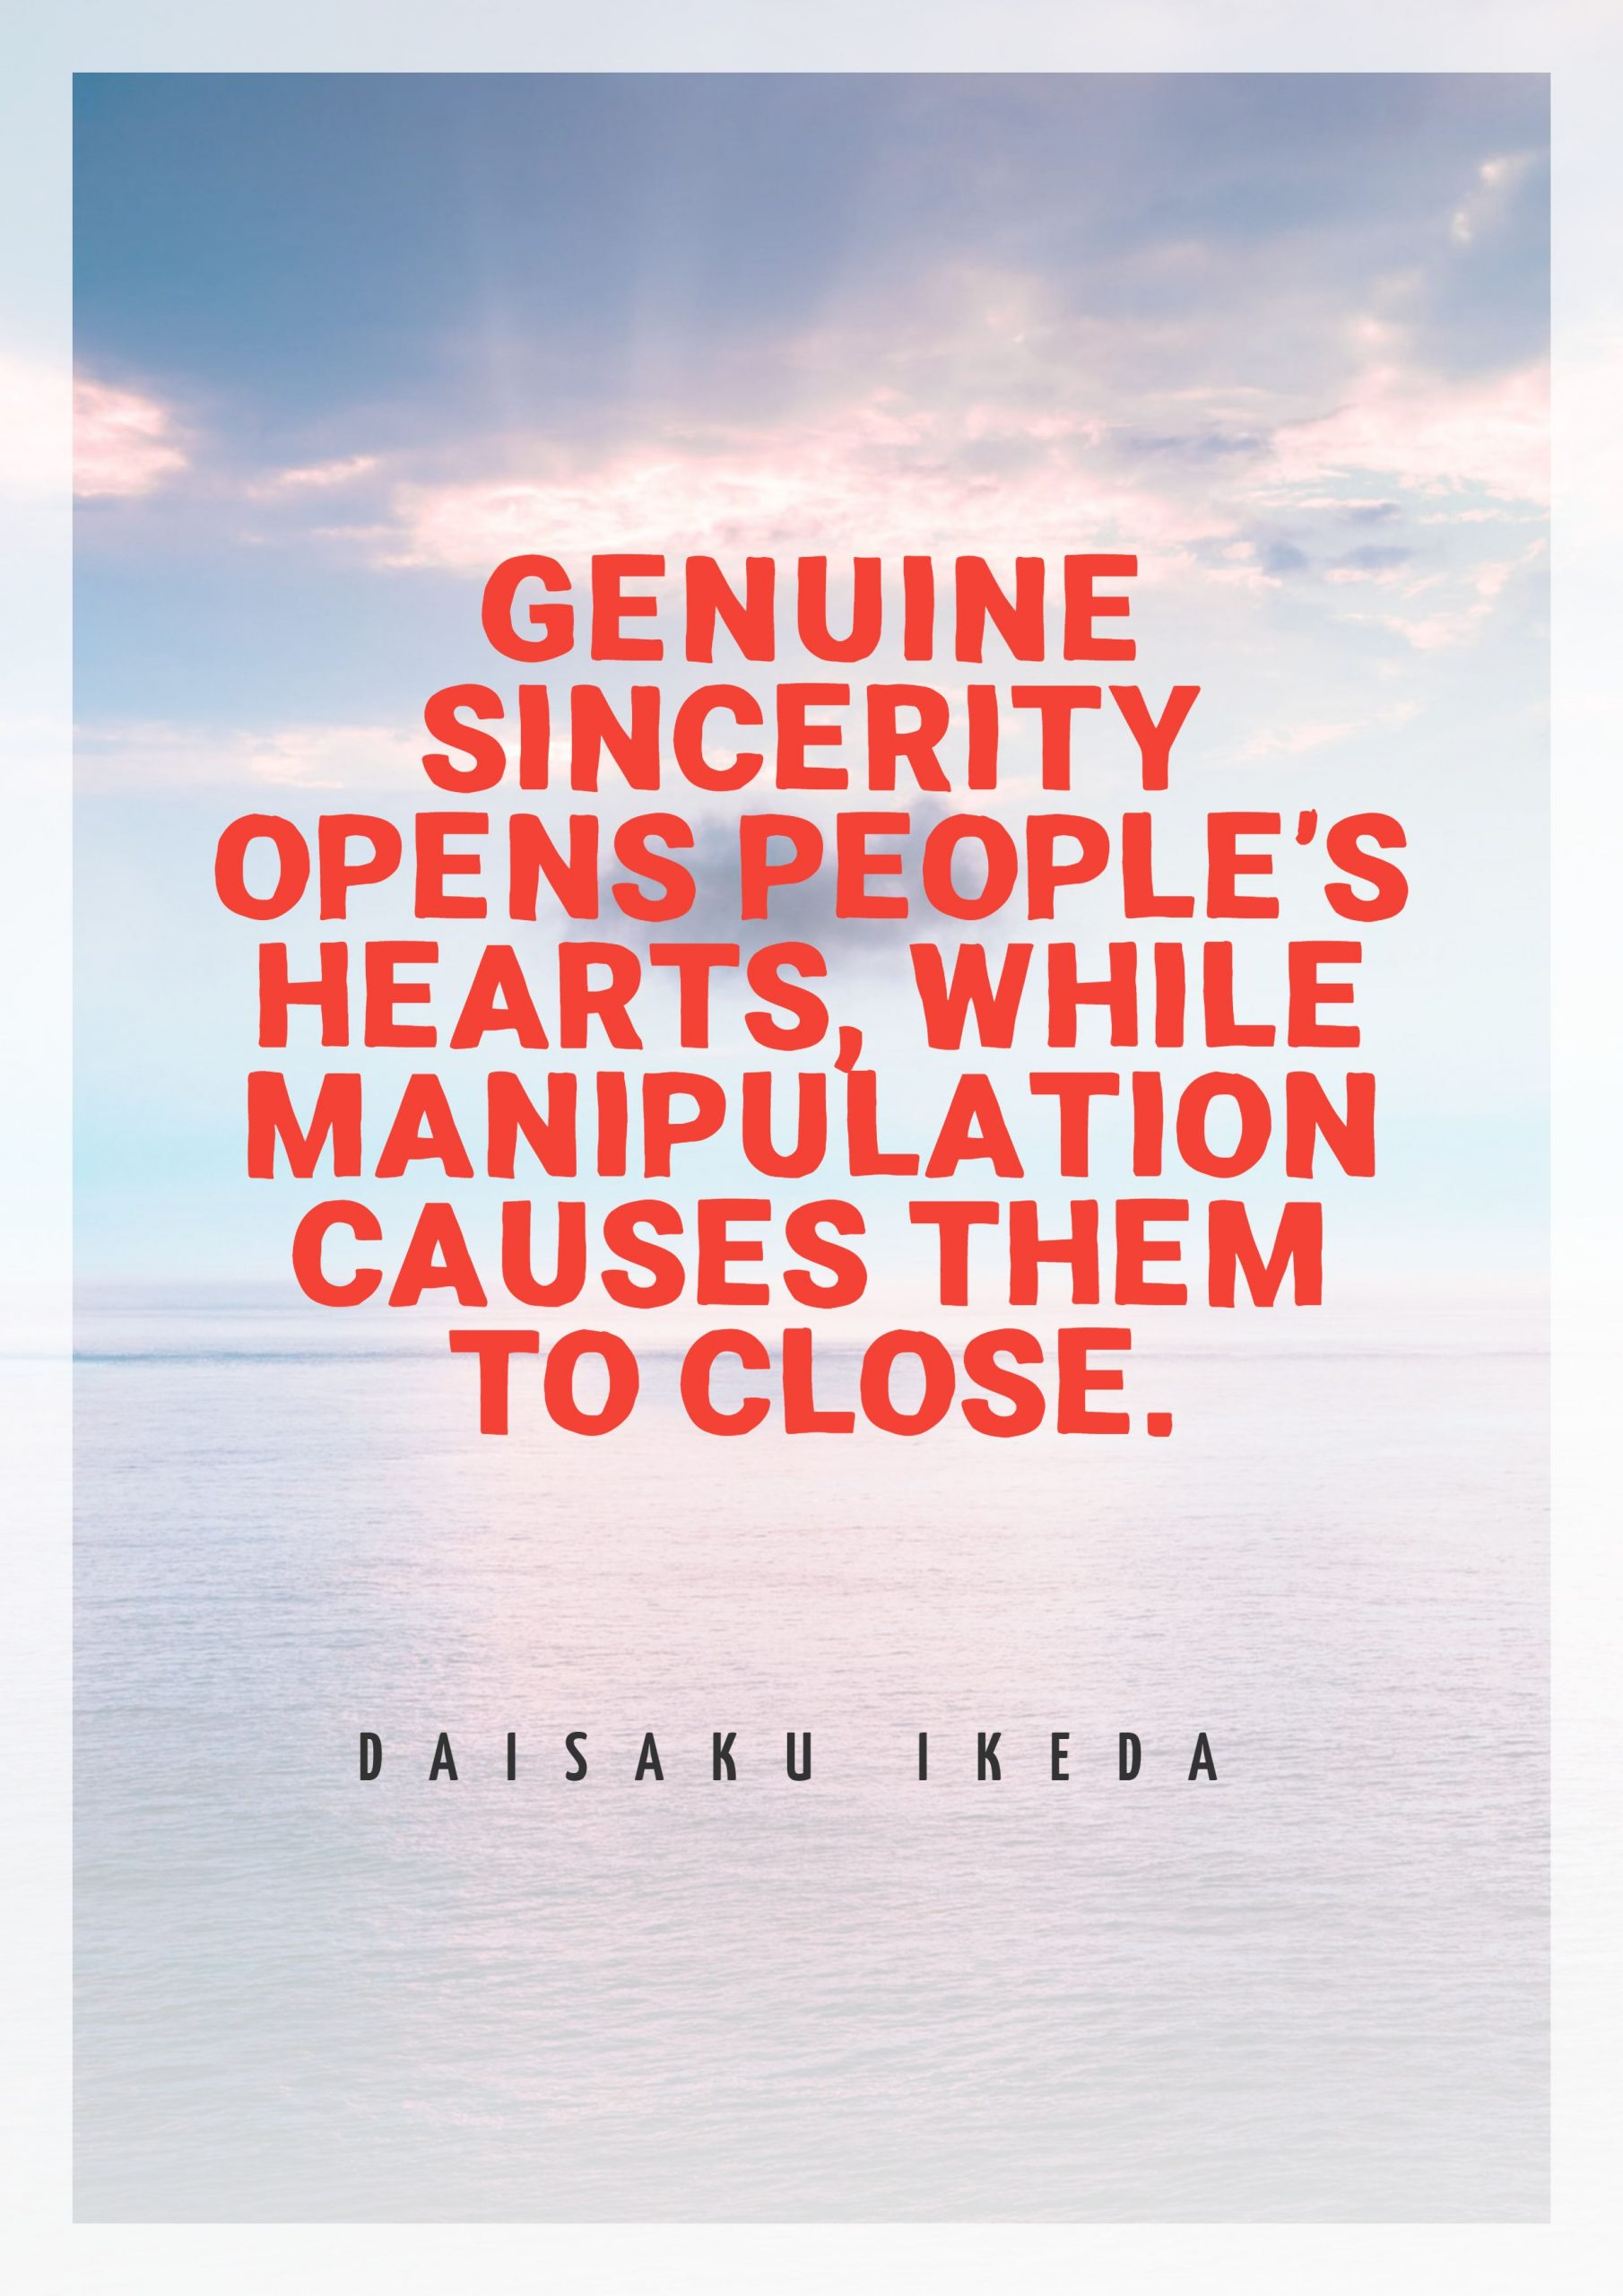 Quotes image of Genuine sincerity opens people's hearts, while manipulation causes them to close.